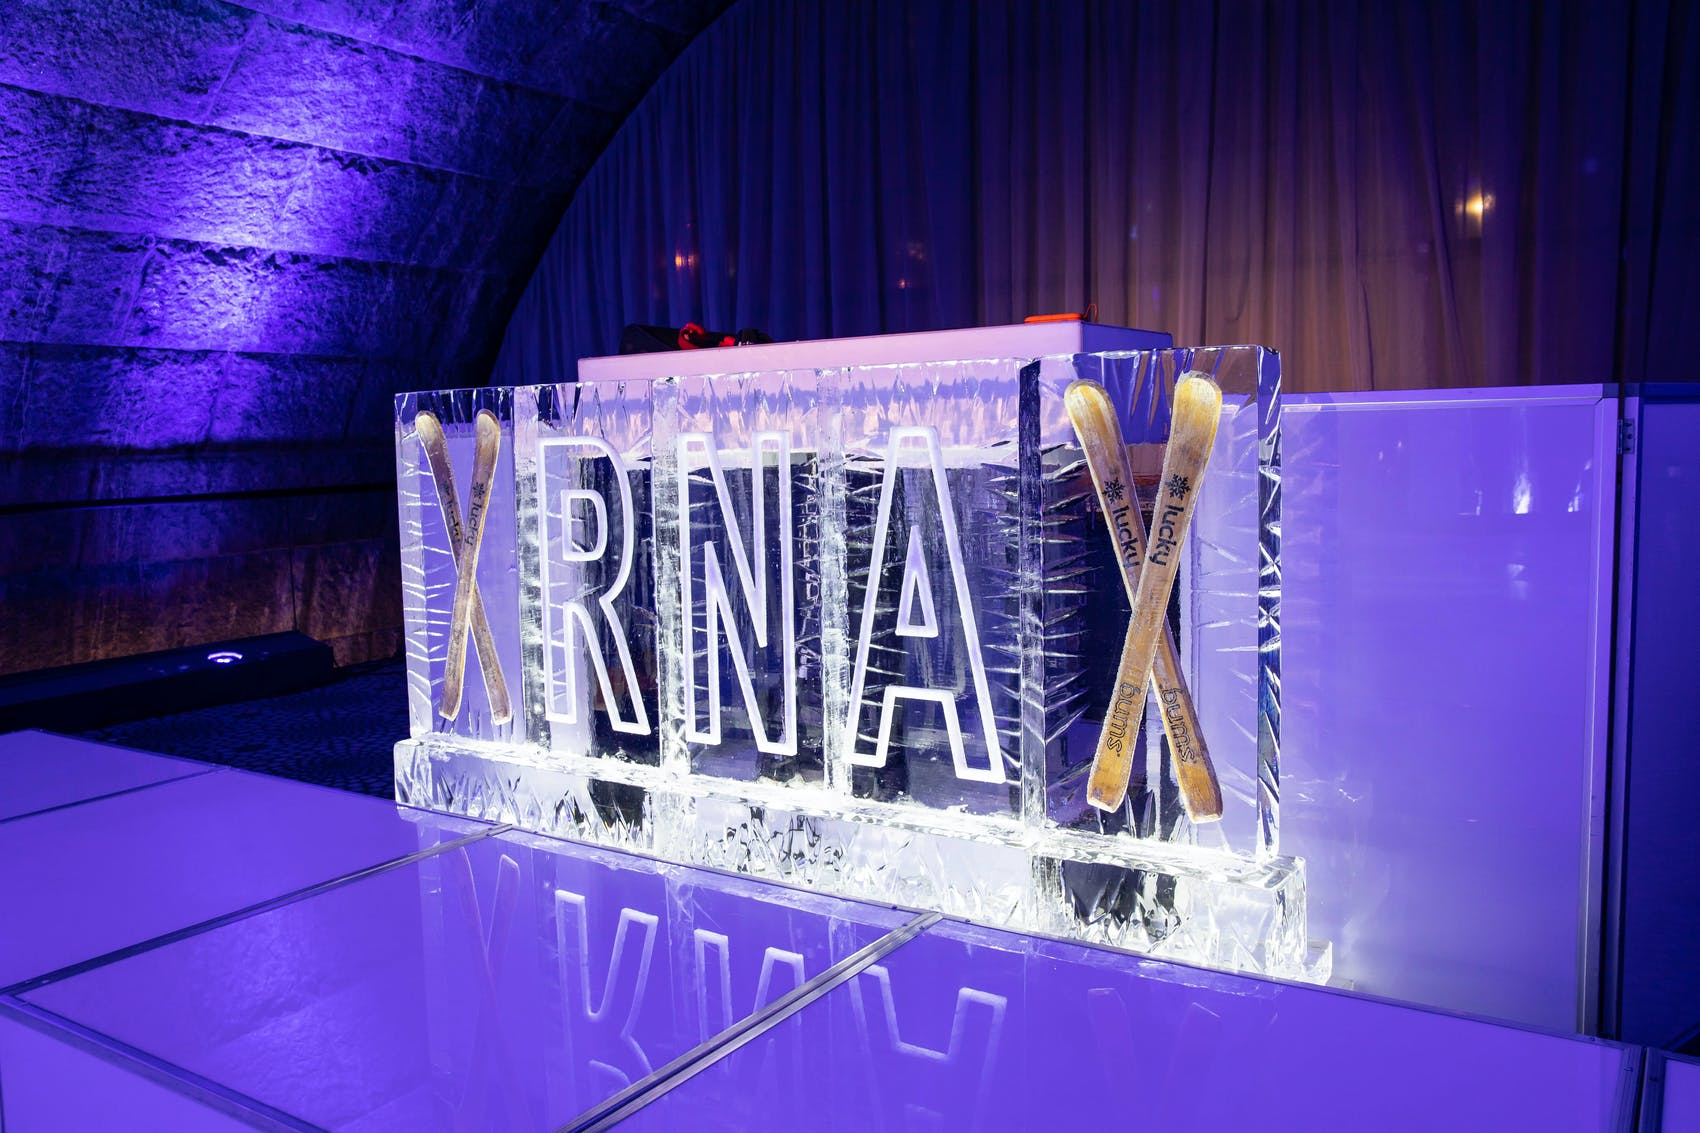 branded ice sculpture with purple dramatic lighting